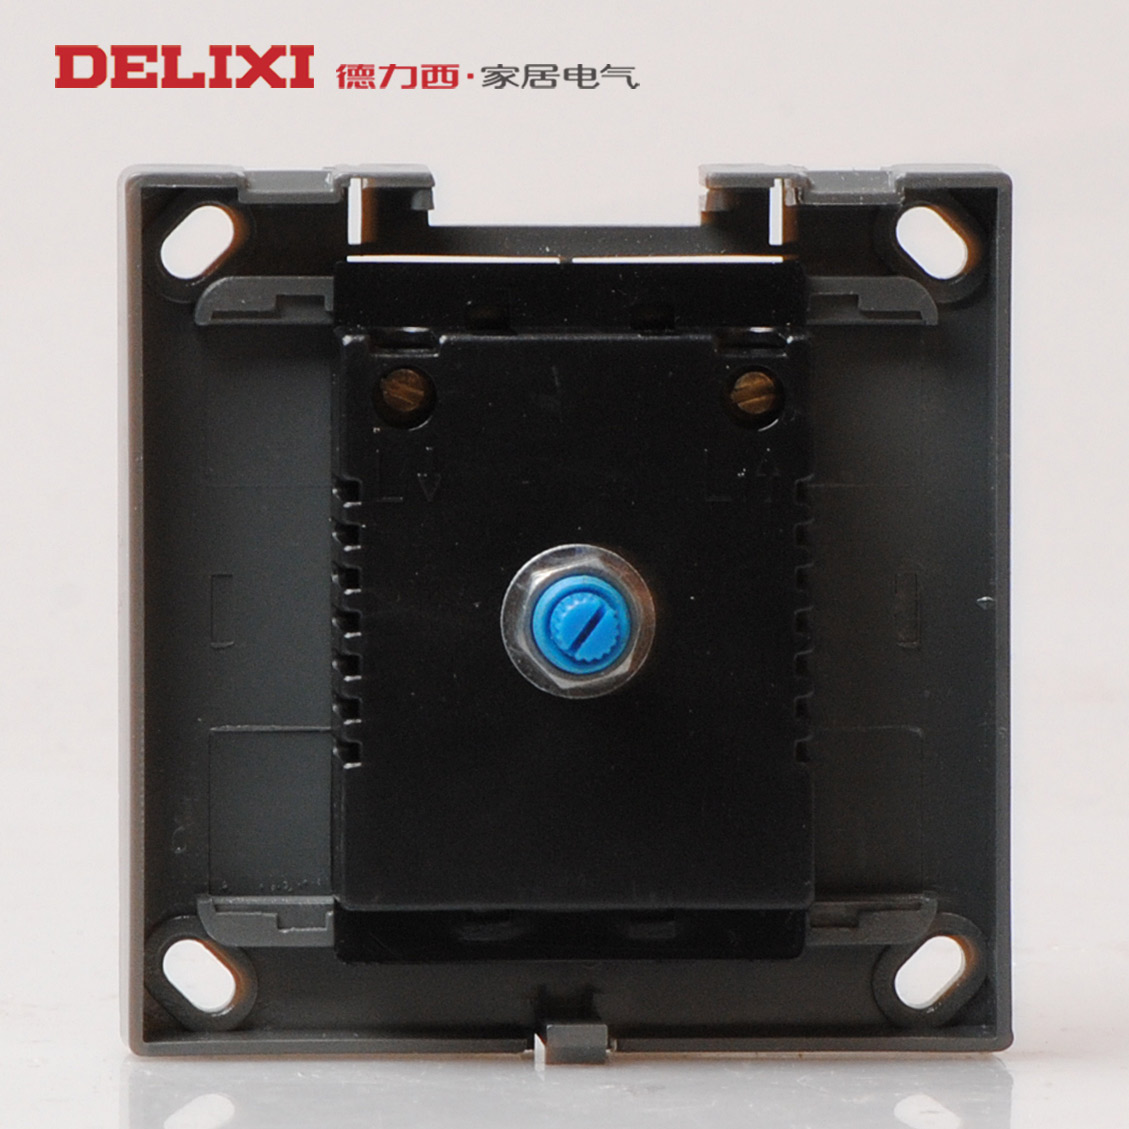 Delixi Ming Installed Dimmer Switch Panel Table Lamp Knob 220v Light